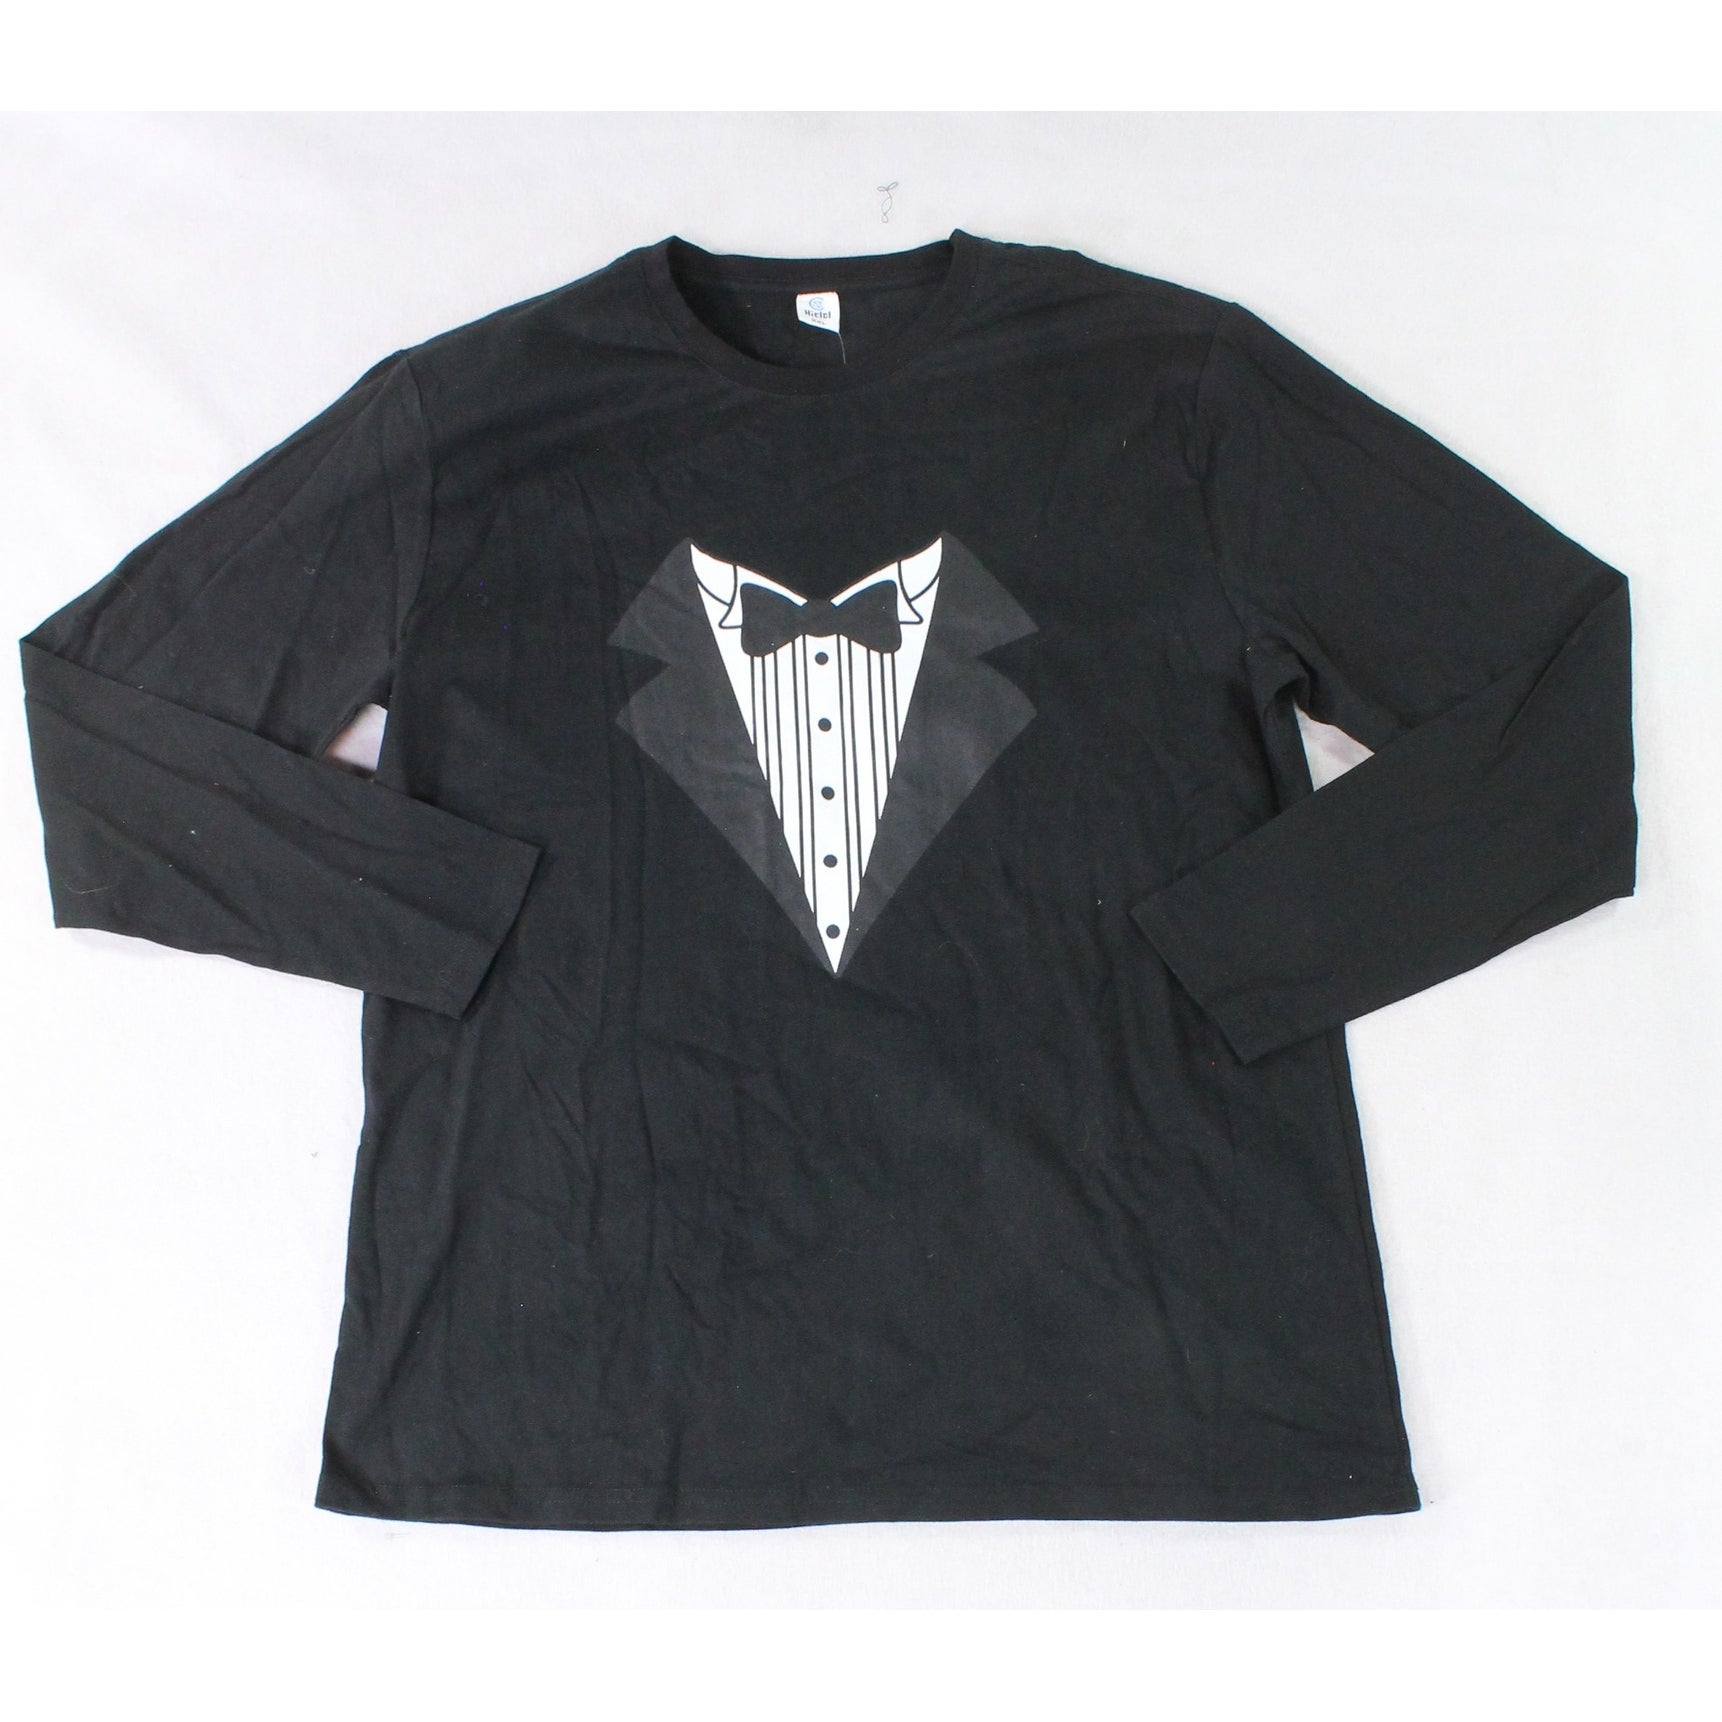 8048cfdbf Shop Hiclol Black Mens Size 2XL Tuxedo Long Sleeve Graphic Tee T-Shirt - On  Sale - Free Shipping On Orders Over $45 - Overstock - 27281123